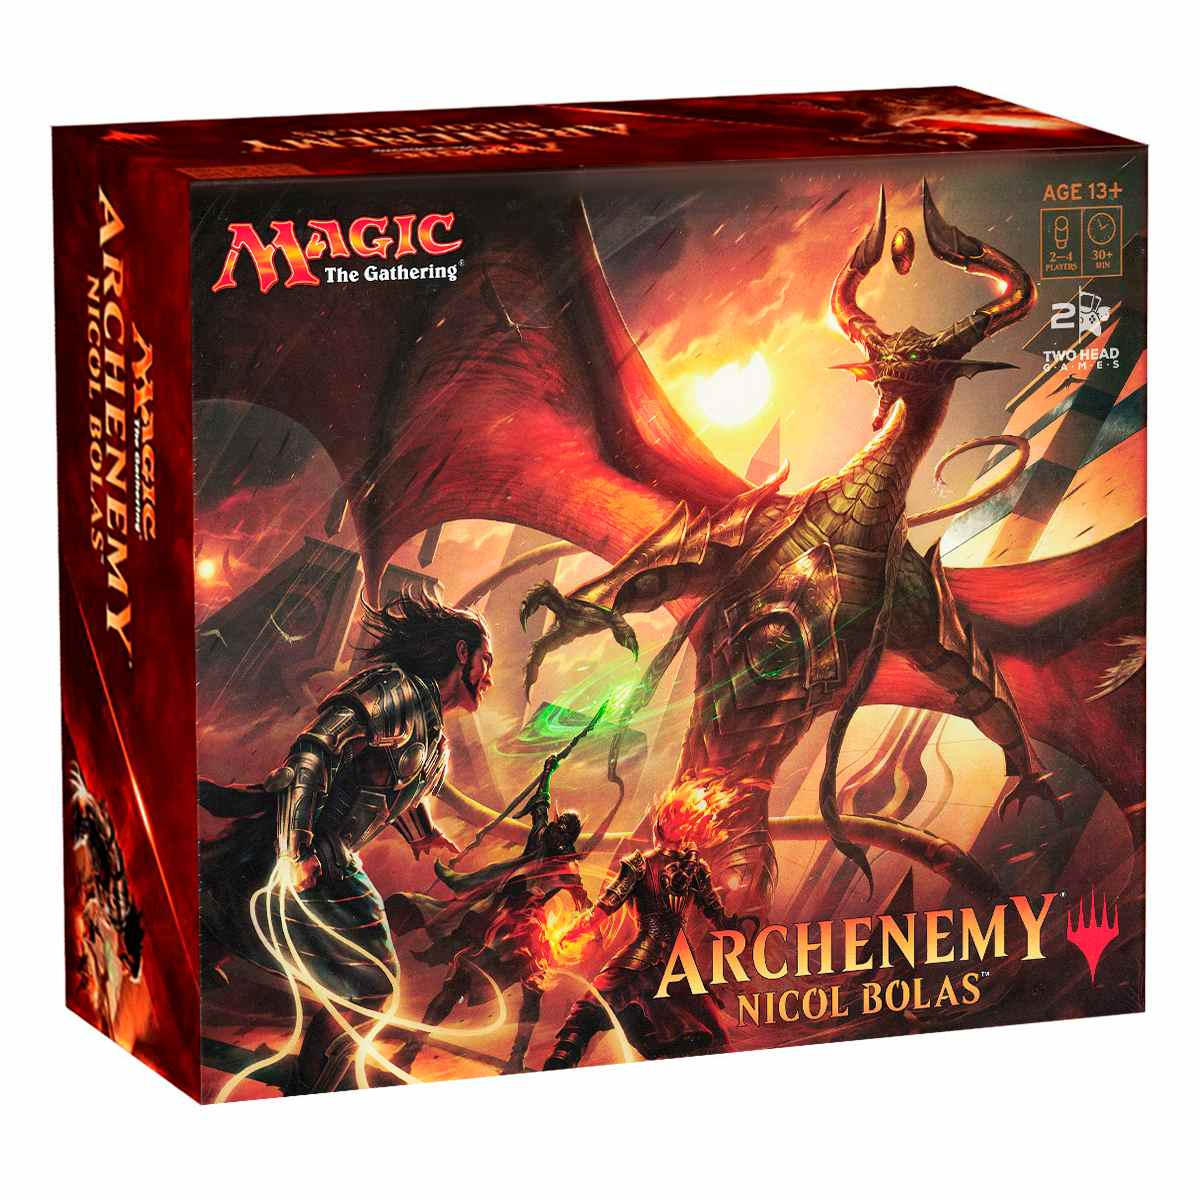 Magic The Gathering Archnemy Nicol Bolas